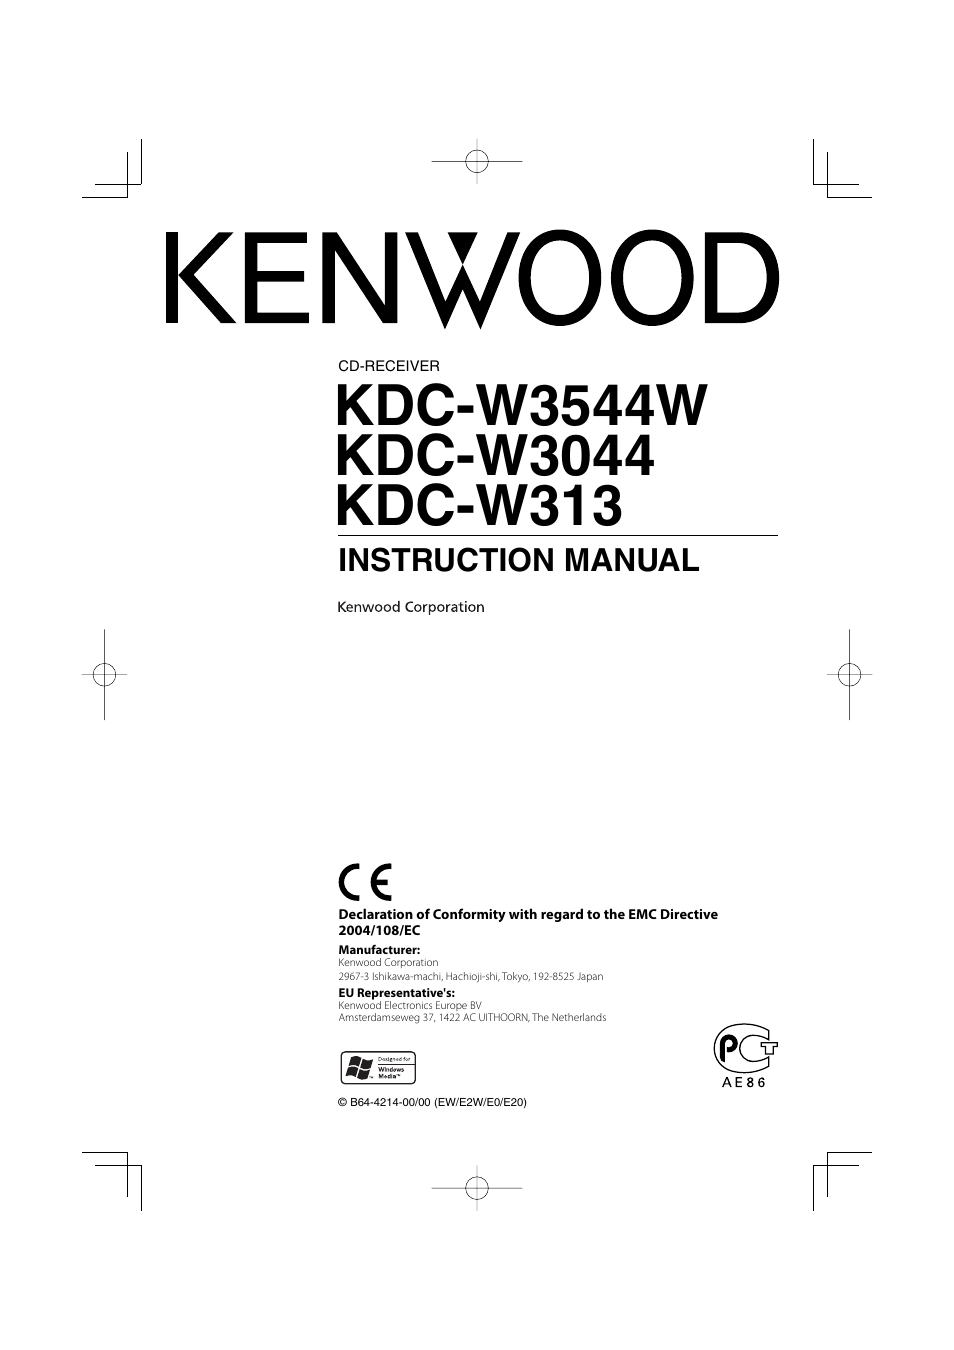 kenwood kdc manual